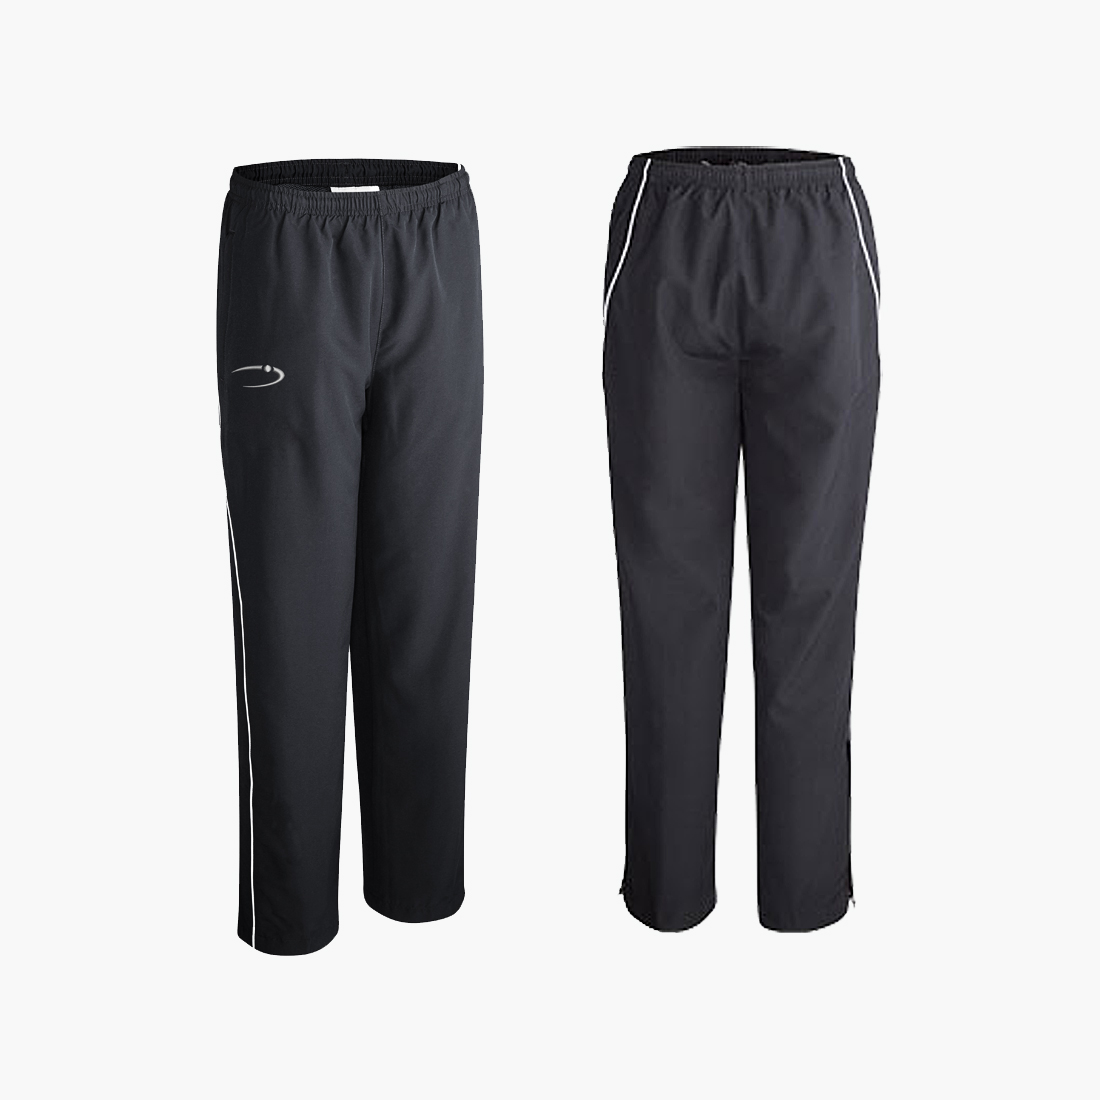 PERFORMATEX WOMEN'S TRAINING PANTS